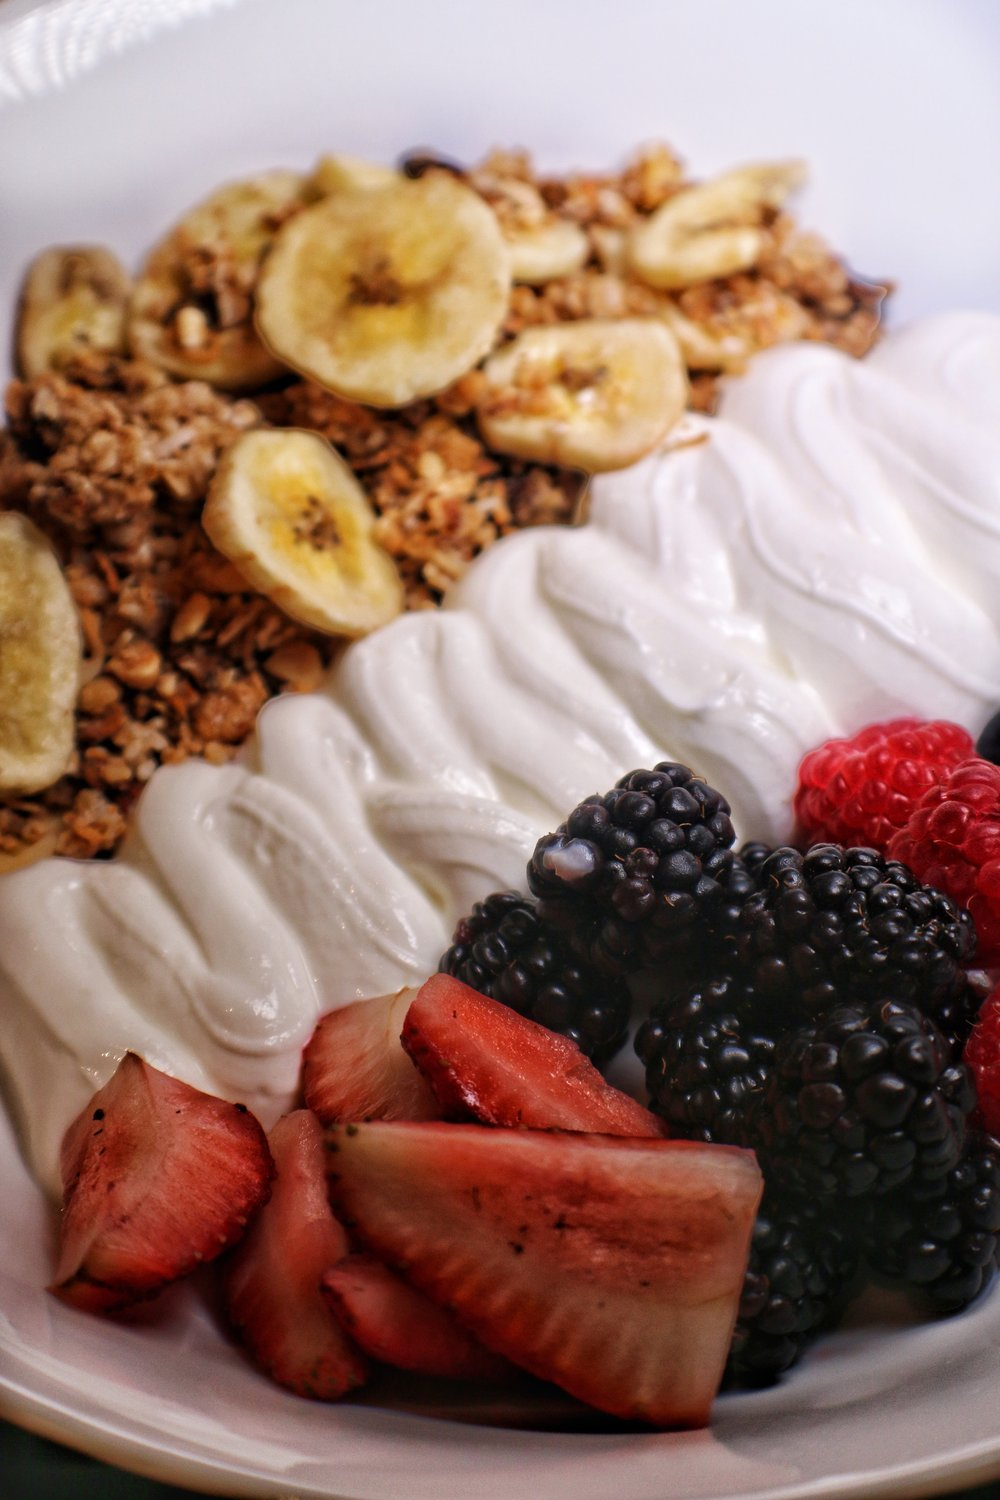 Homemade granola, winter fruits, Greek style yogurt